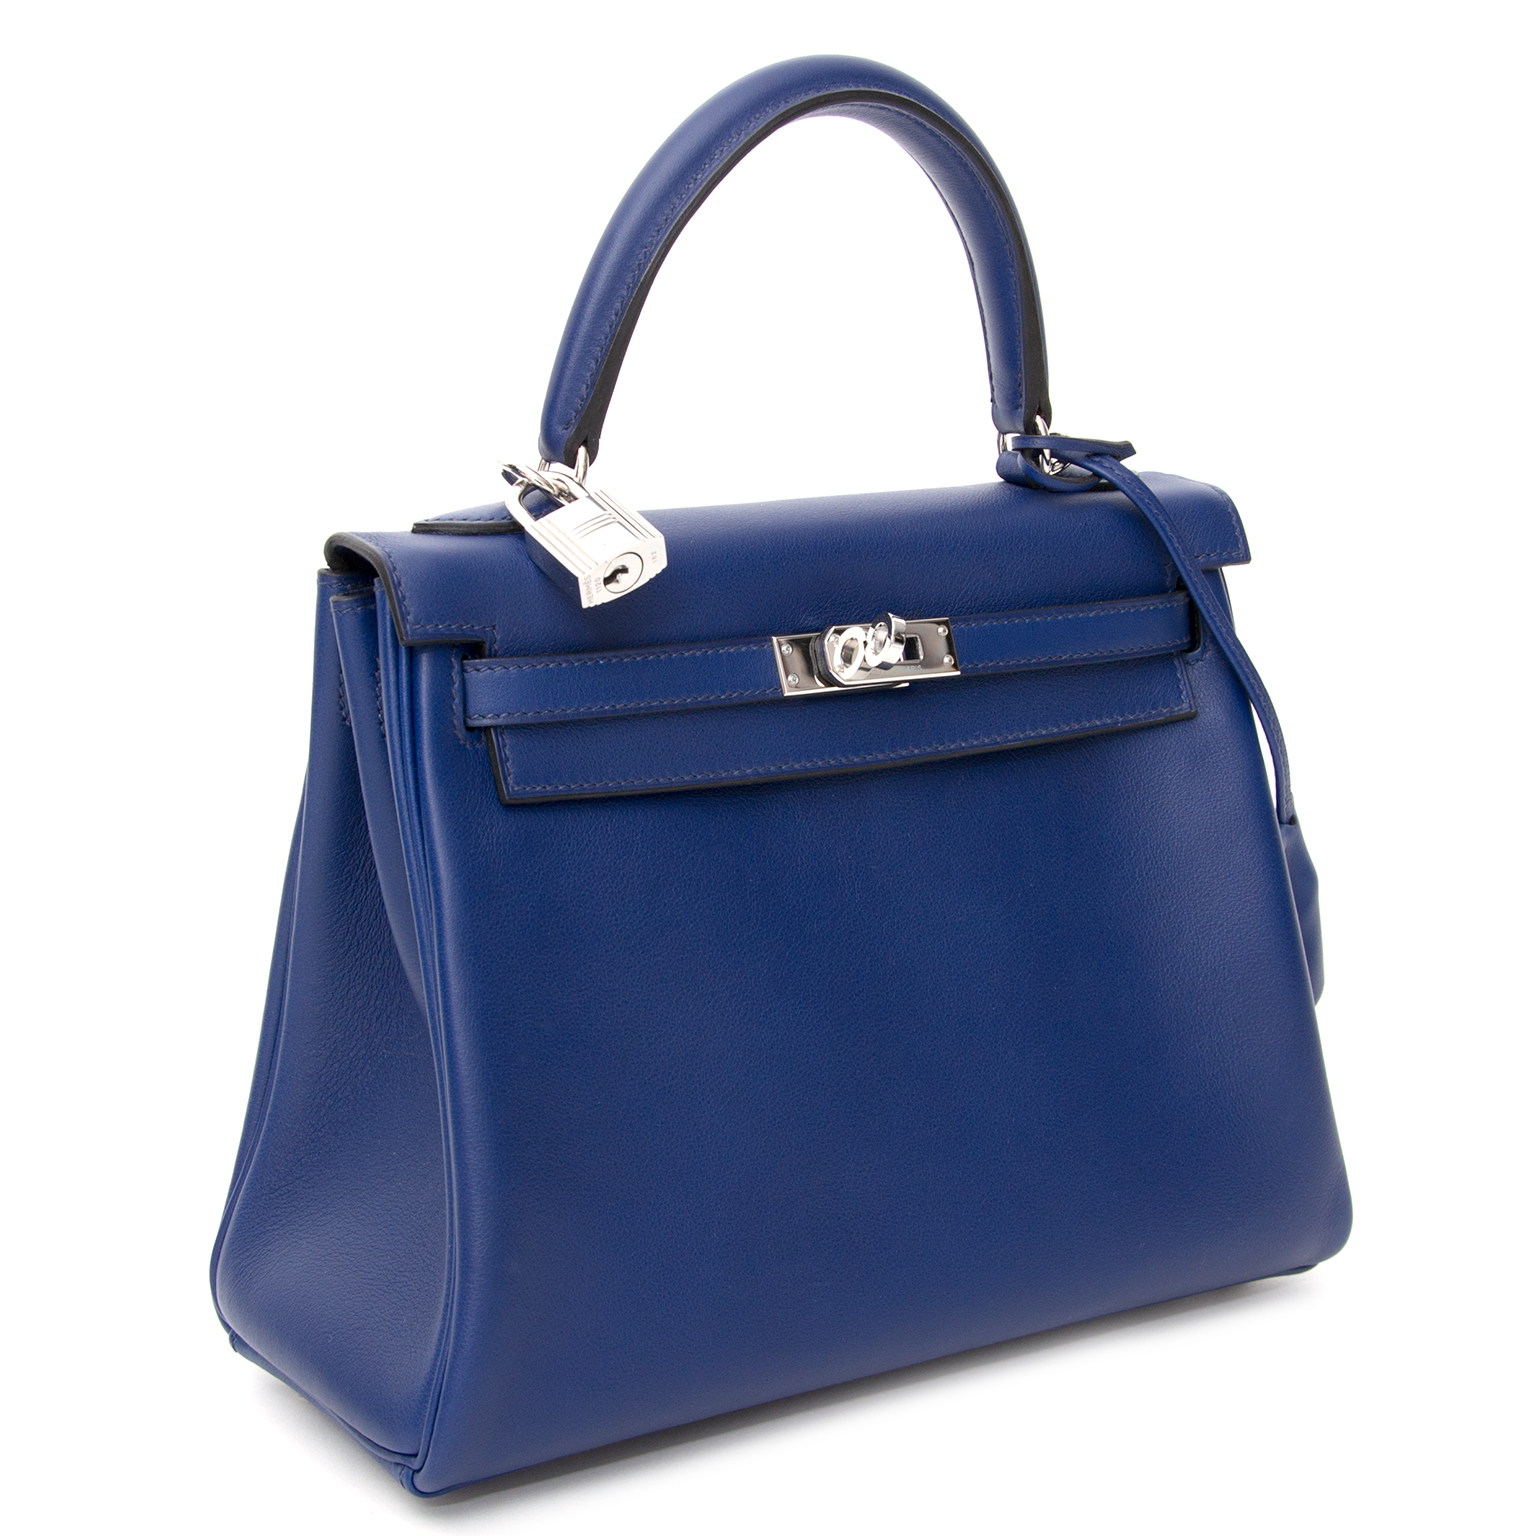 shop safe online secondhand Brand New Hermes Kelly 25 Blue Saphire PHW Veau Swift